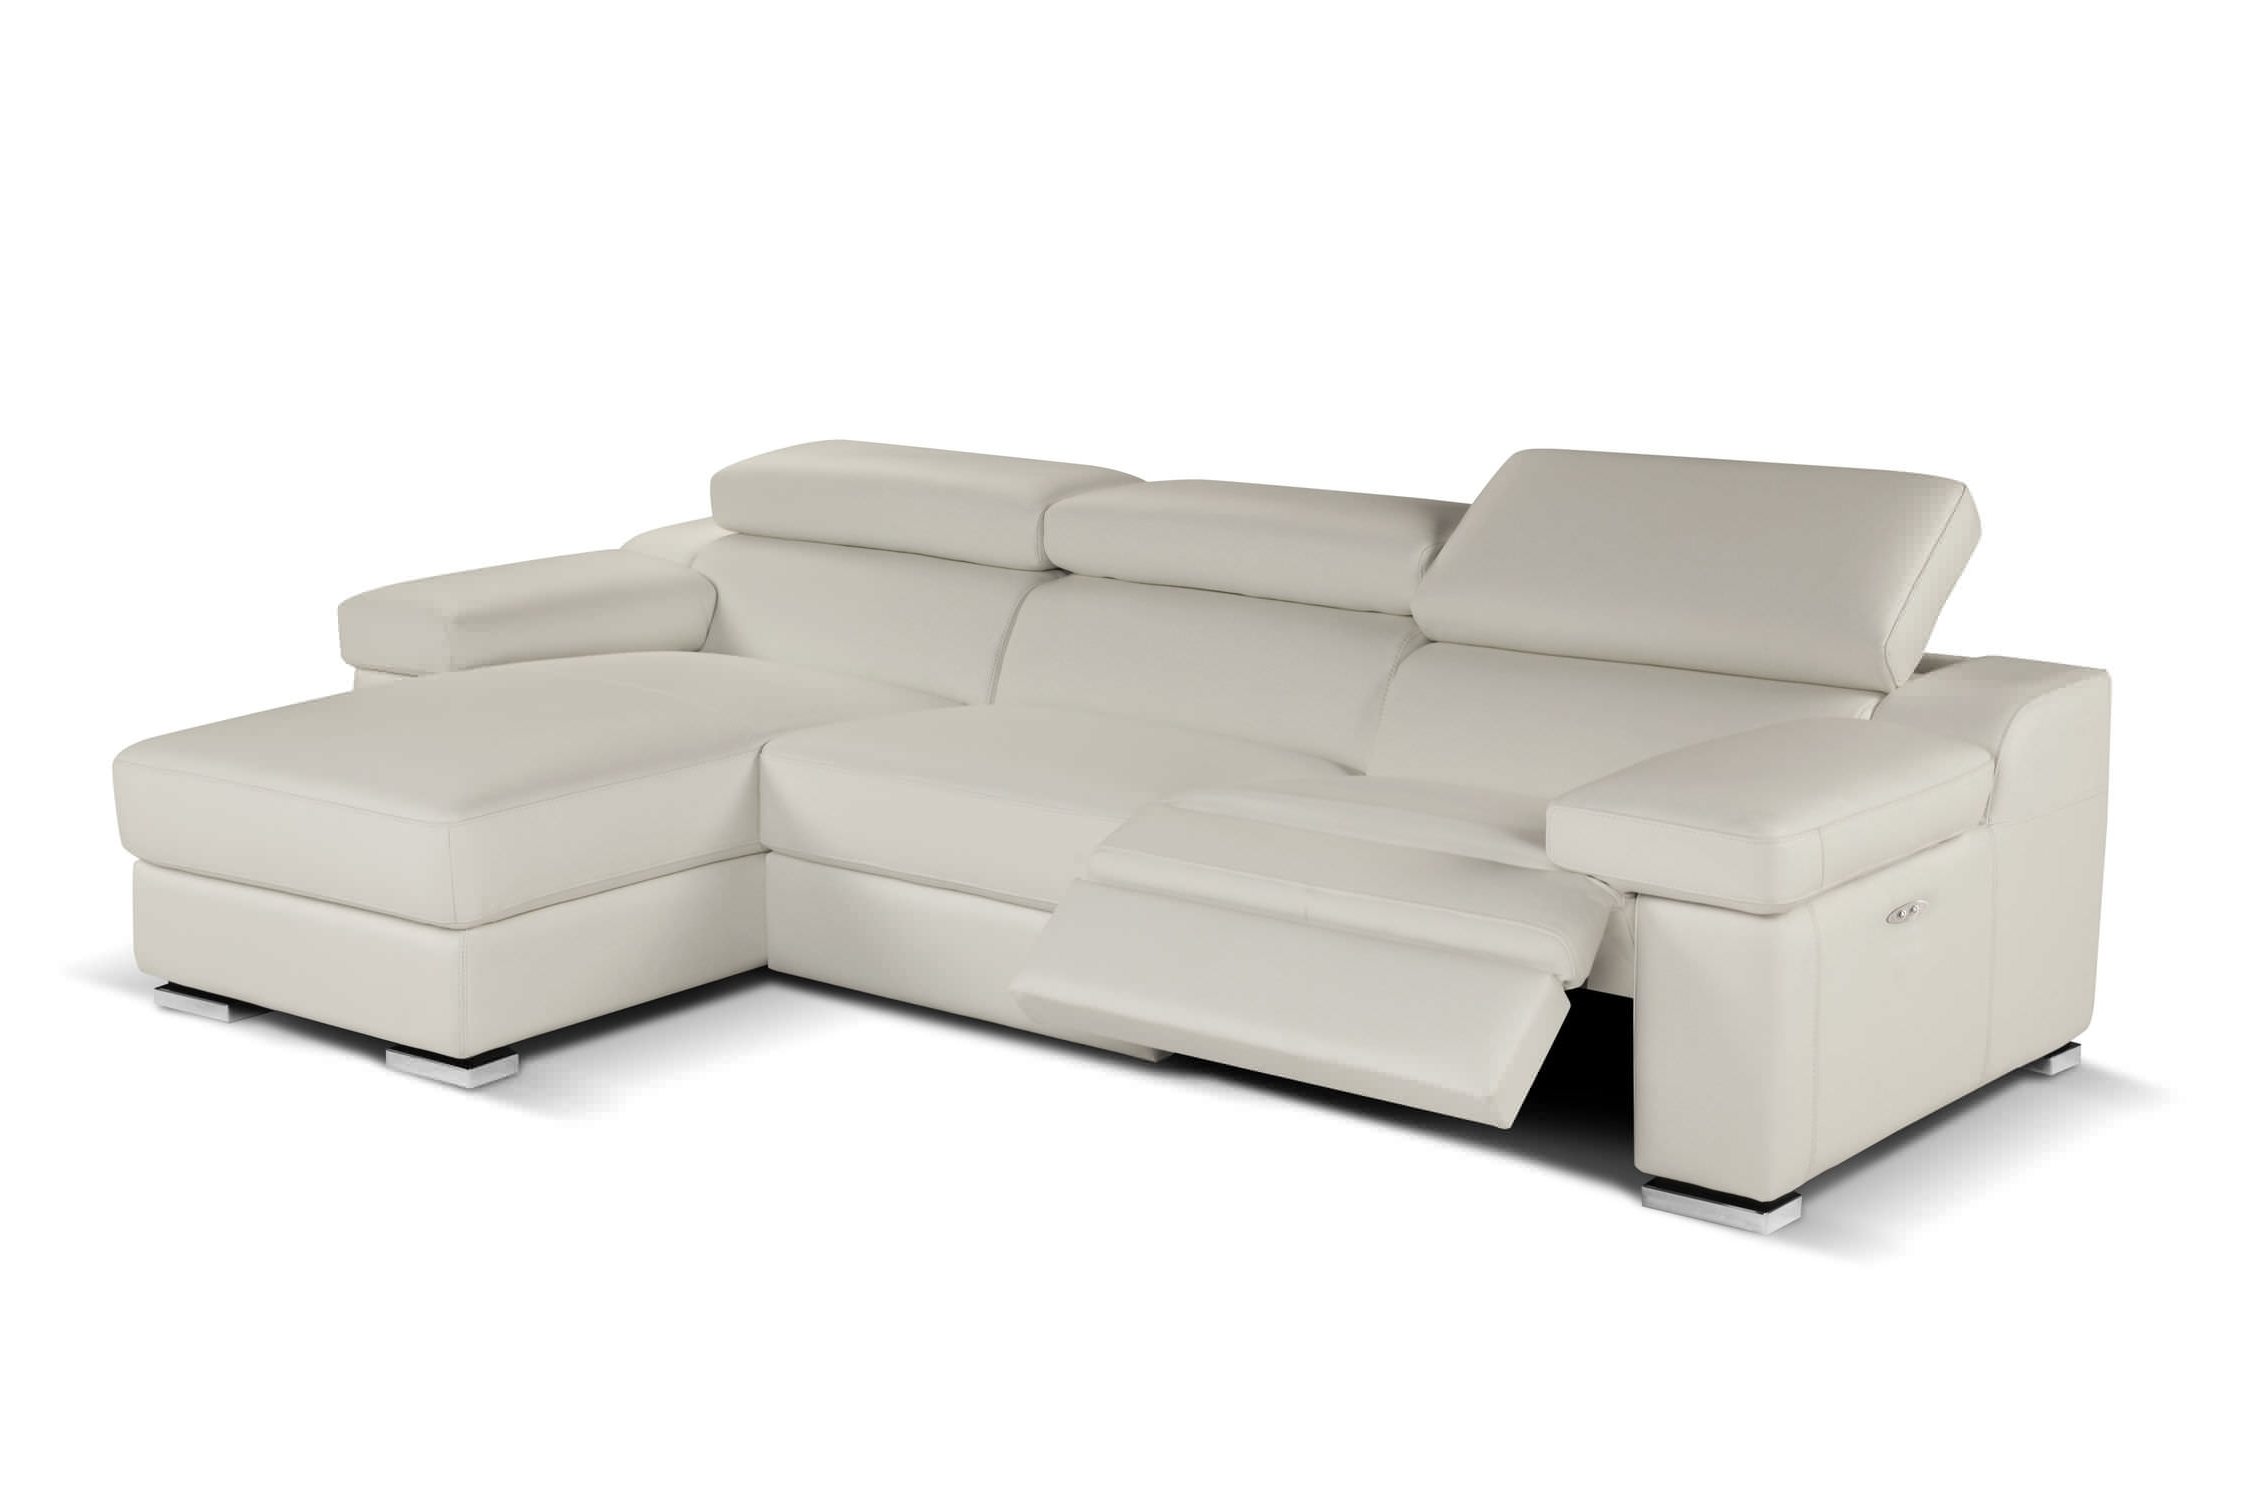 Favorite Modern Reclining Leather Sofas Pertaining To 4sofa – Hledat Googlem (View 3 of 20)